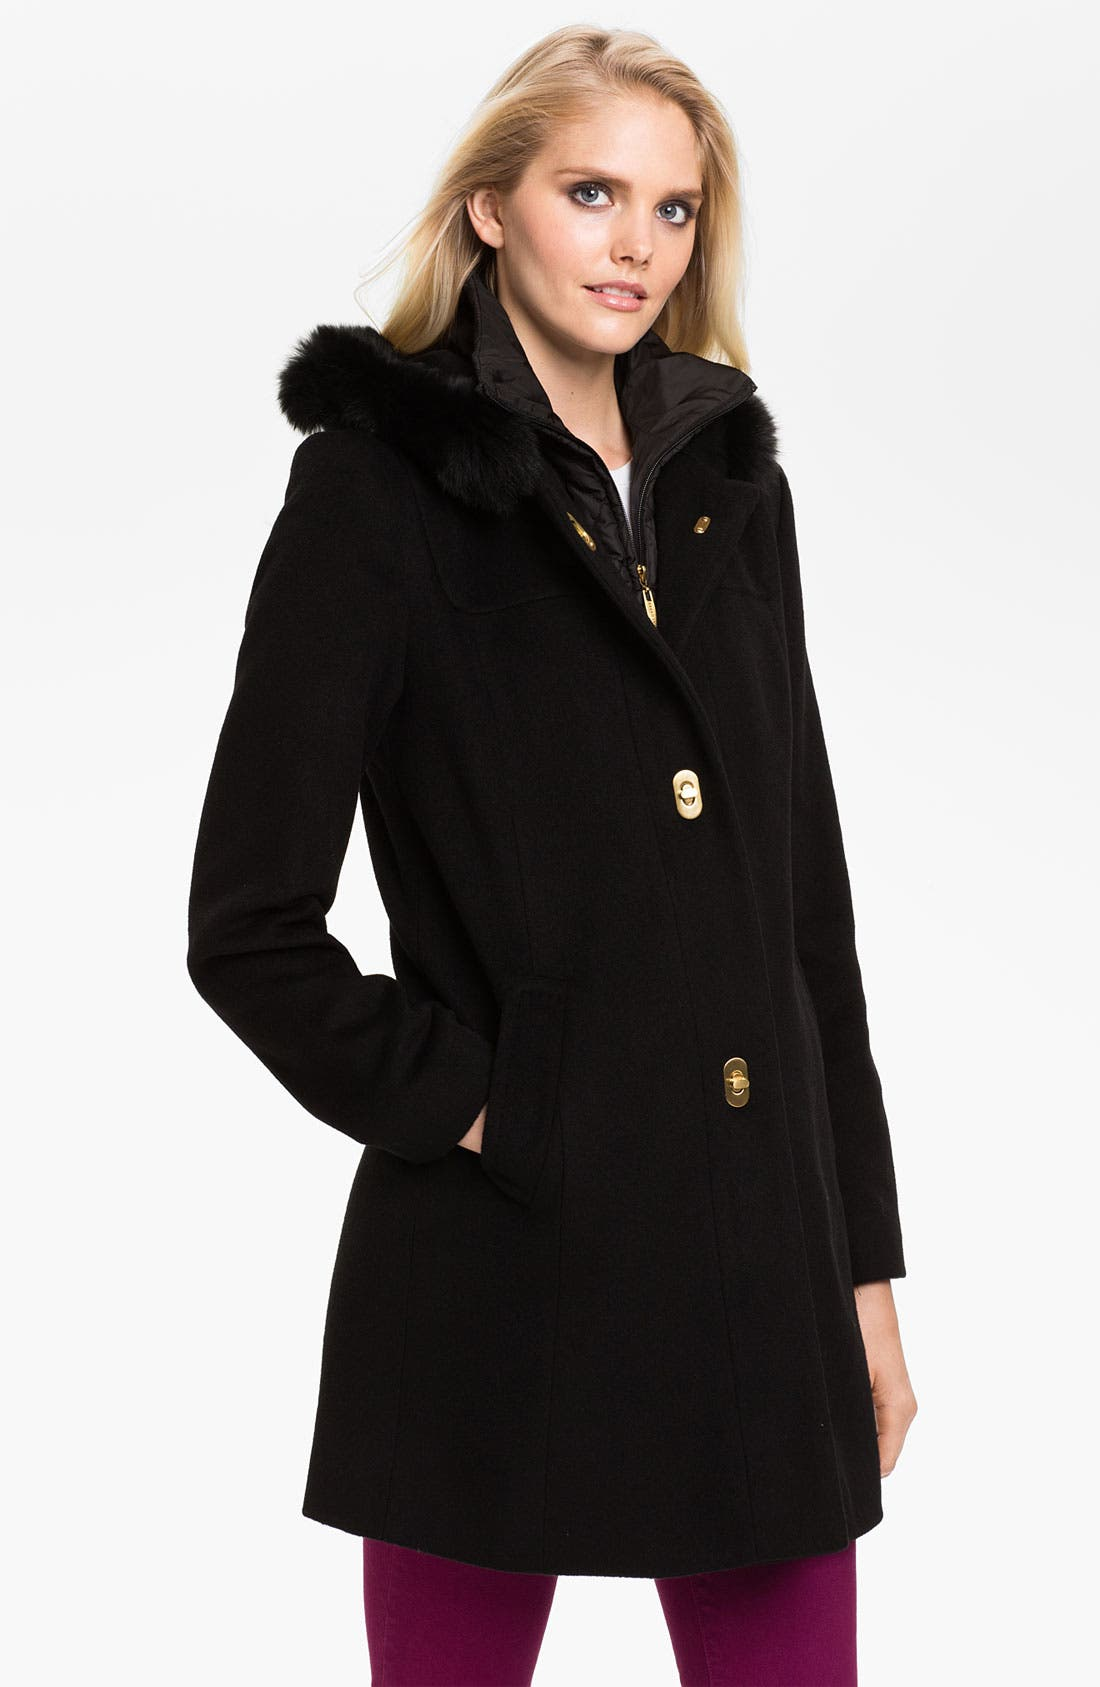 Main Image - Ellen Tracy Turnkey Coat with Fur Trim Hood (Online Exclusive)